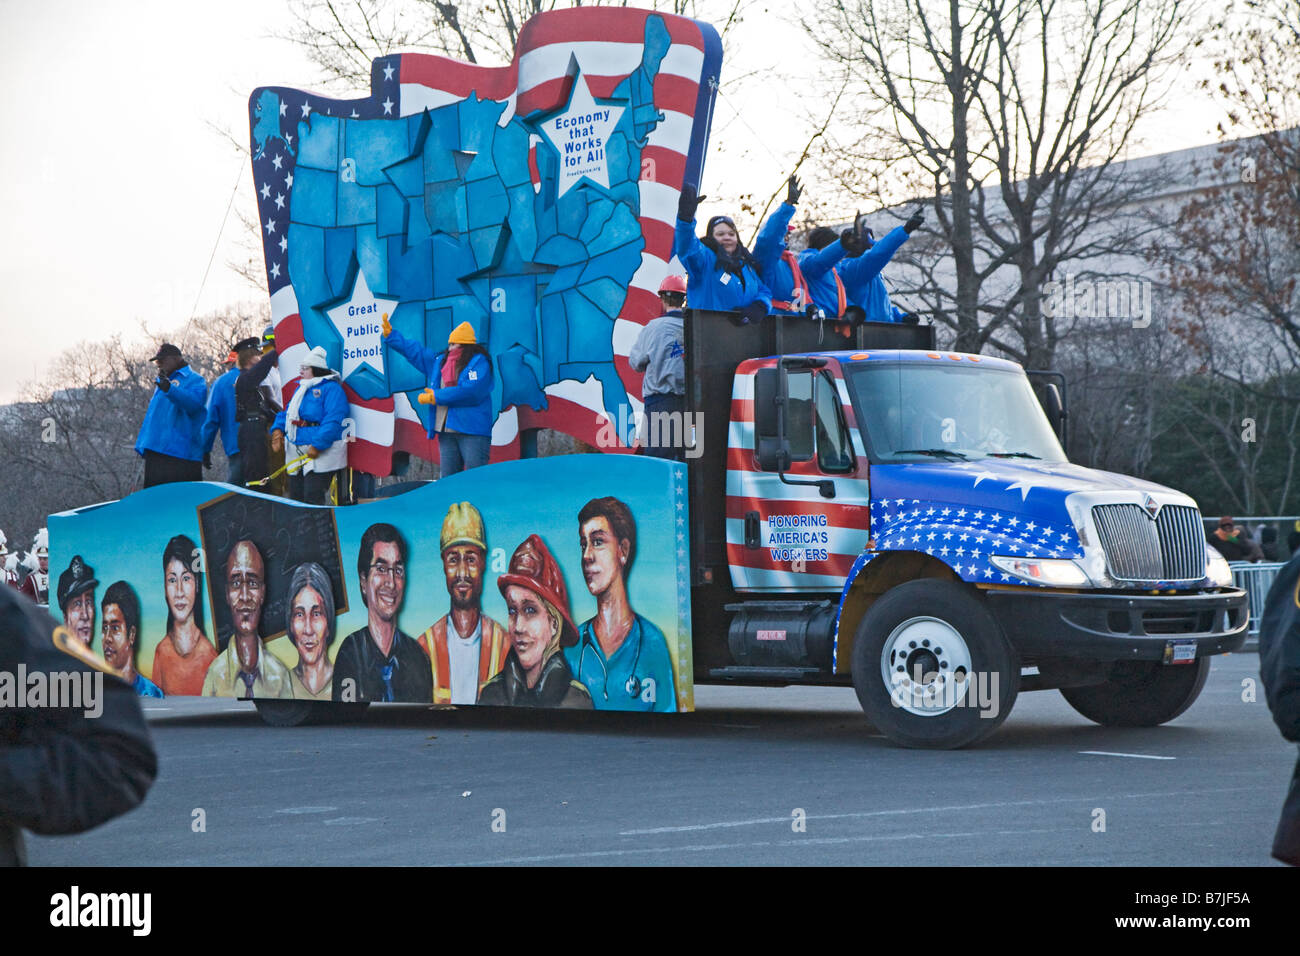 Labor Float in Obama Inaugural Parade - Stock Image